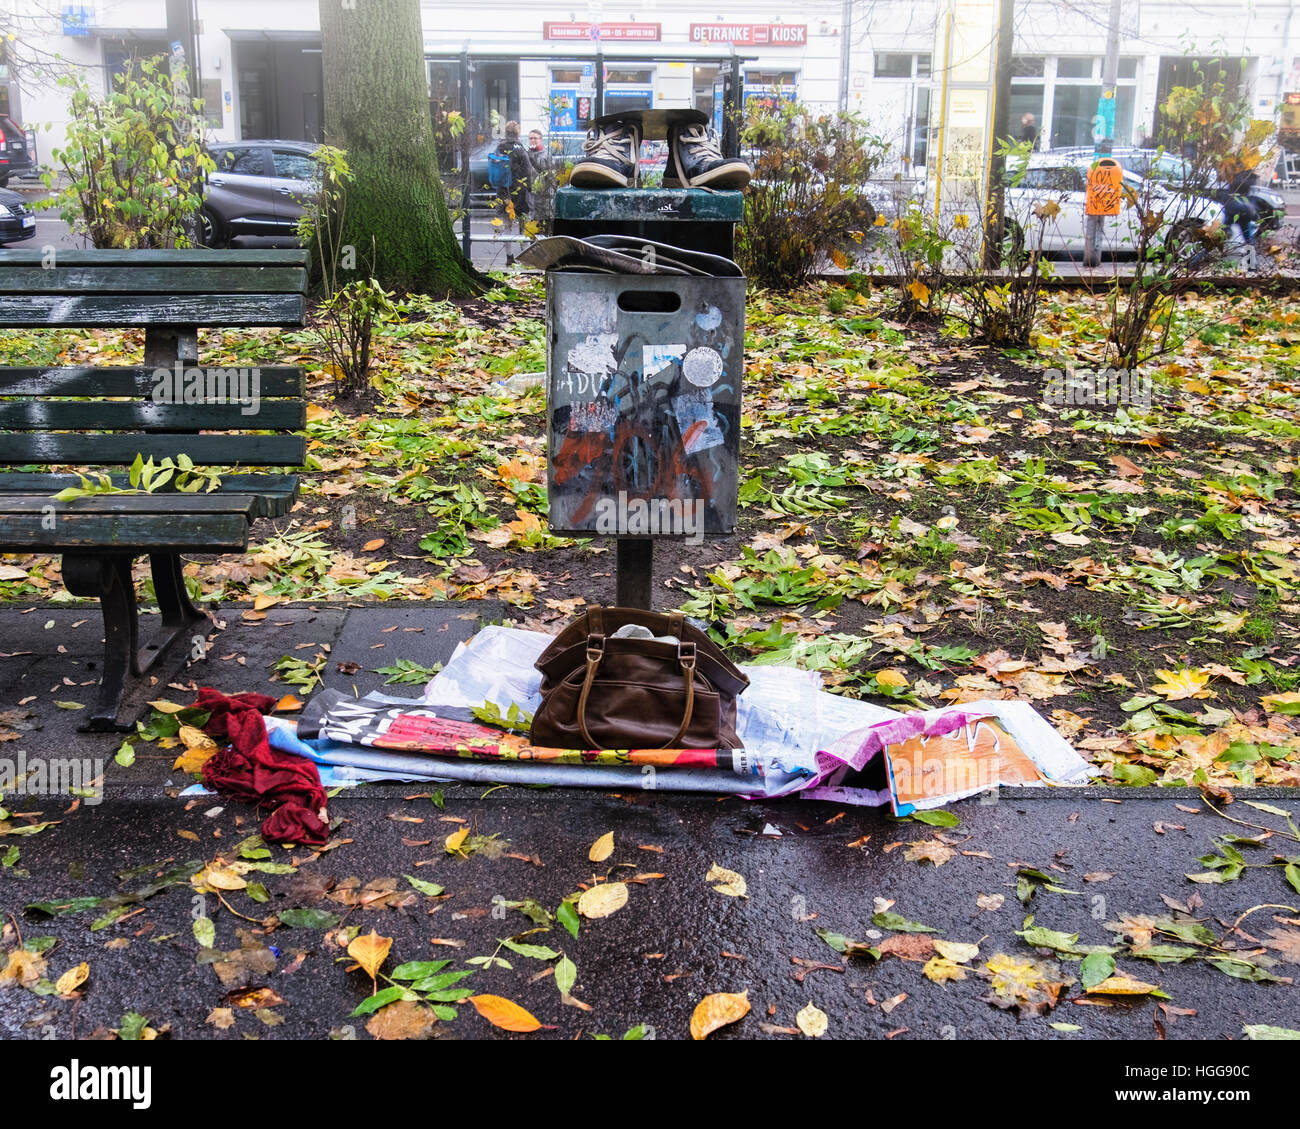 Berlin, Mitte.Volkspark am Weinberg. Overflowing trash can with dumped shoes and bag in Autumn - Stock Image